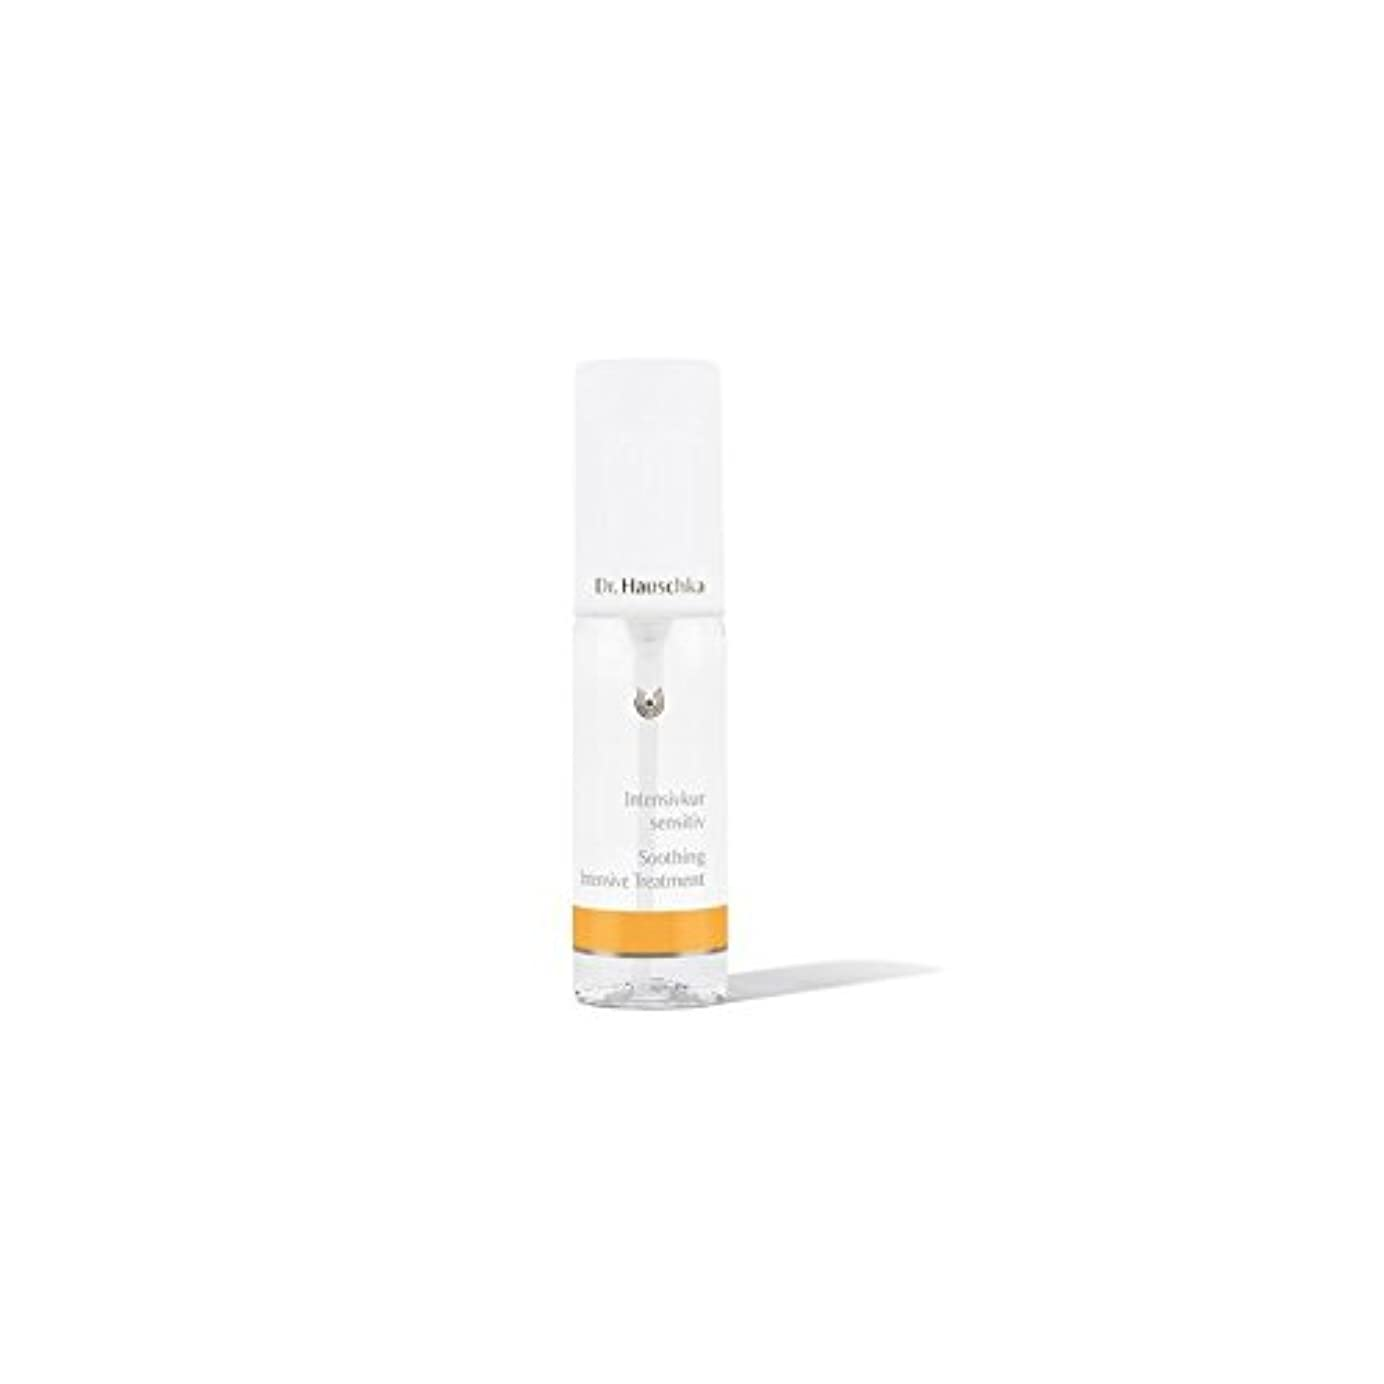 Dr. Hauschka Soothing Intensive Treatment 40ml - 集中治療の40ミリリットルをなだめるハウシュカ [並行輸入品]